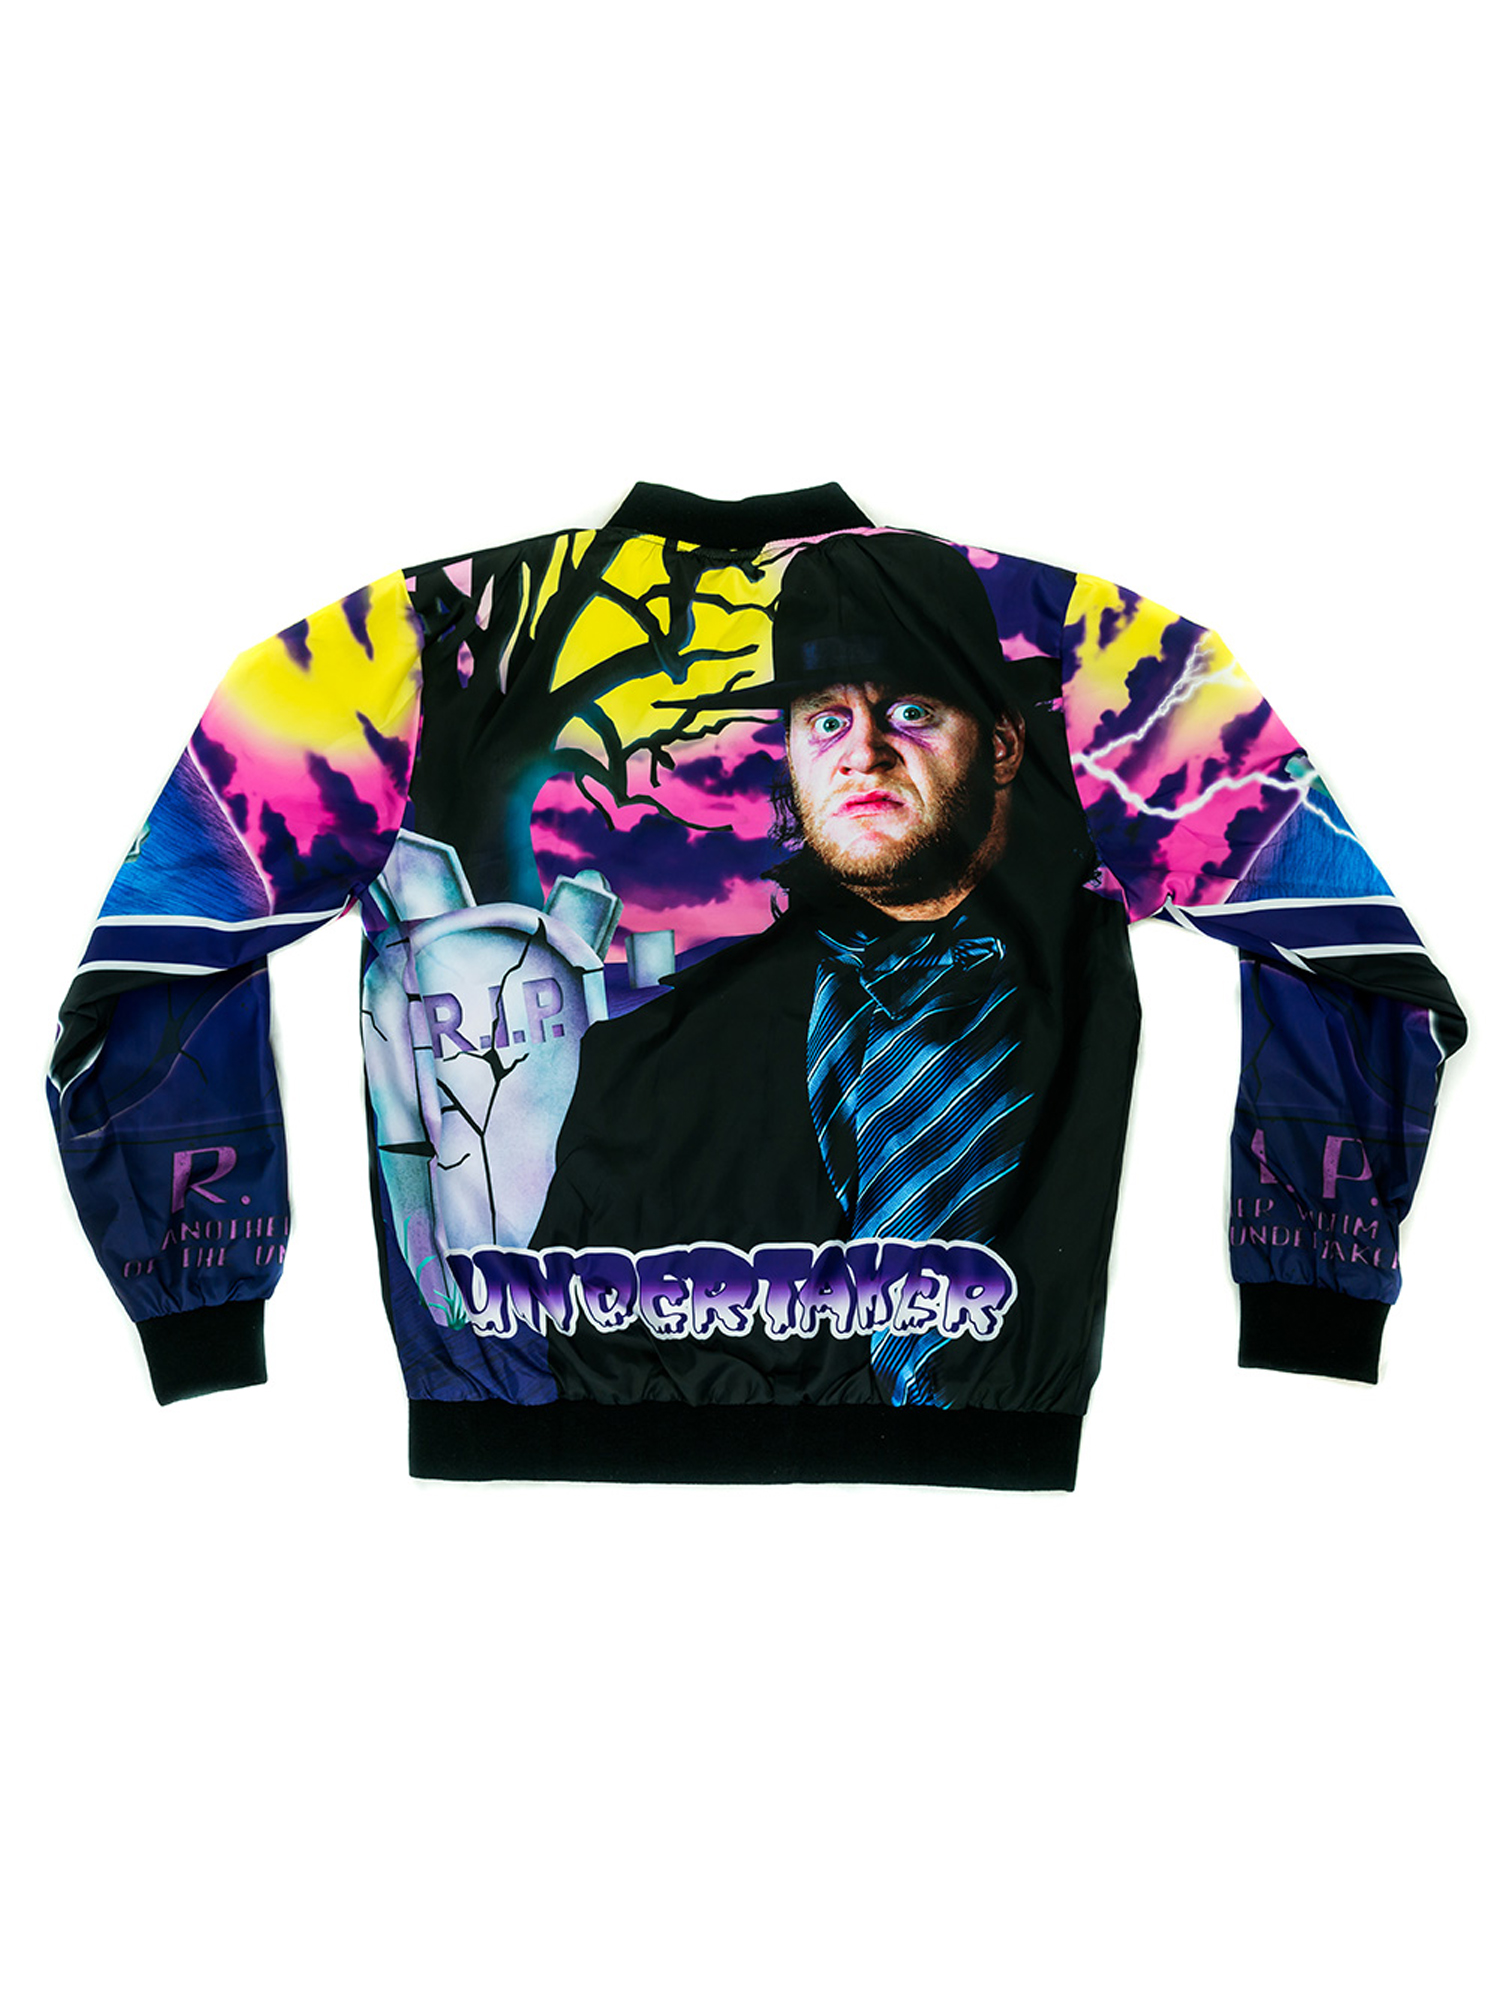 Official WWE Authentic Undertaker Vintage Fanimation Jacket Black Purple by